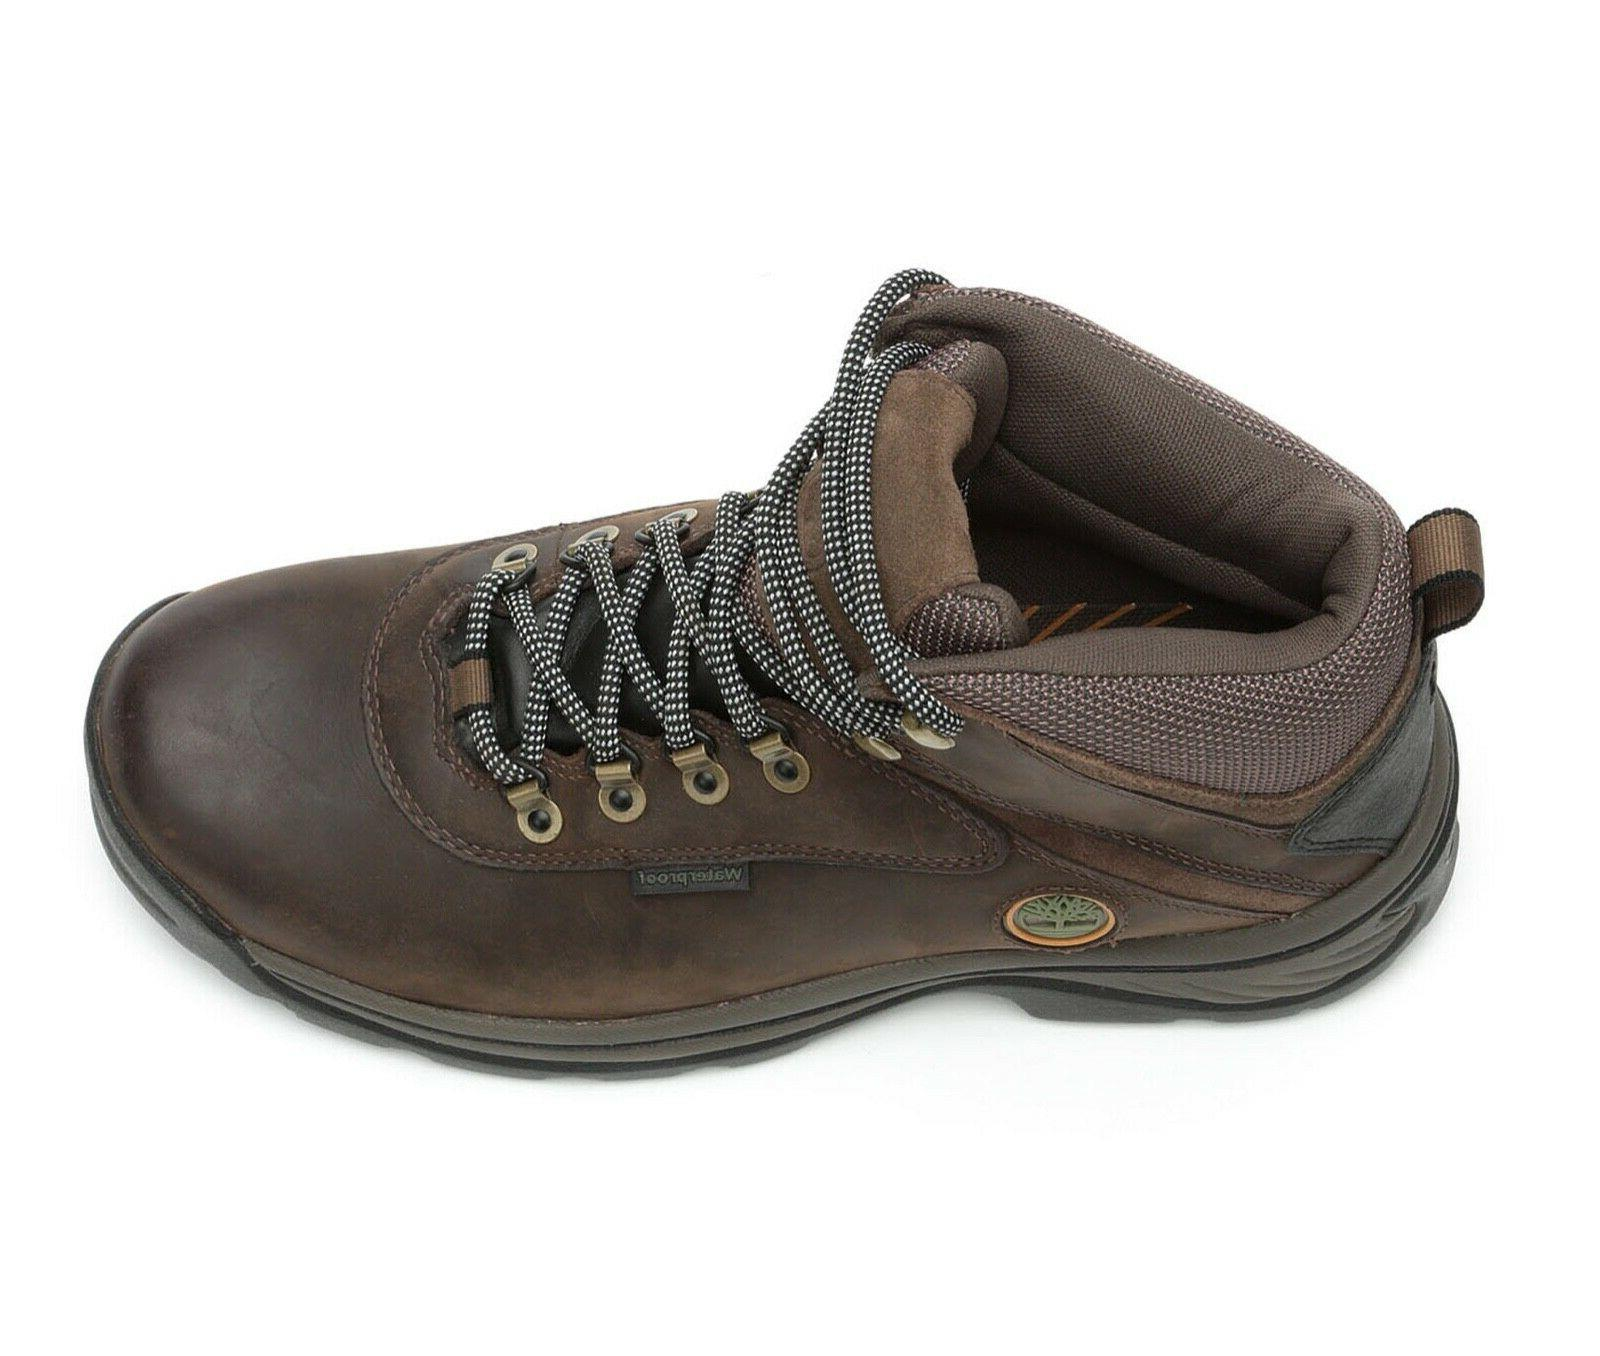 Timberland White Ledge Brown Leather Hiking 12135214 SIZES